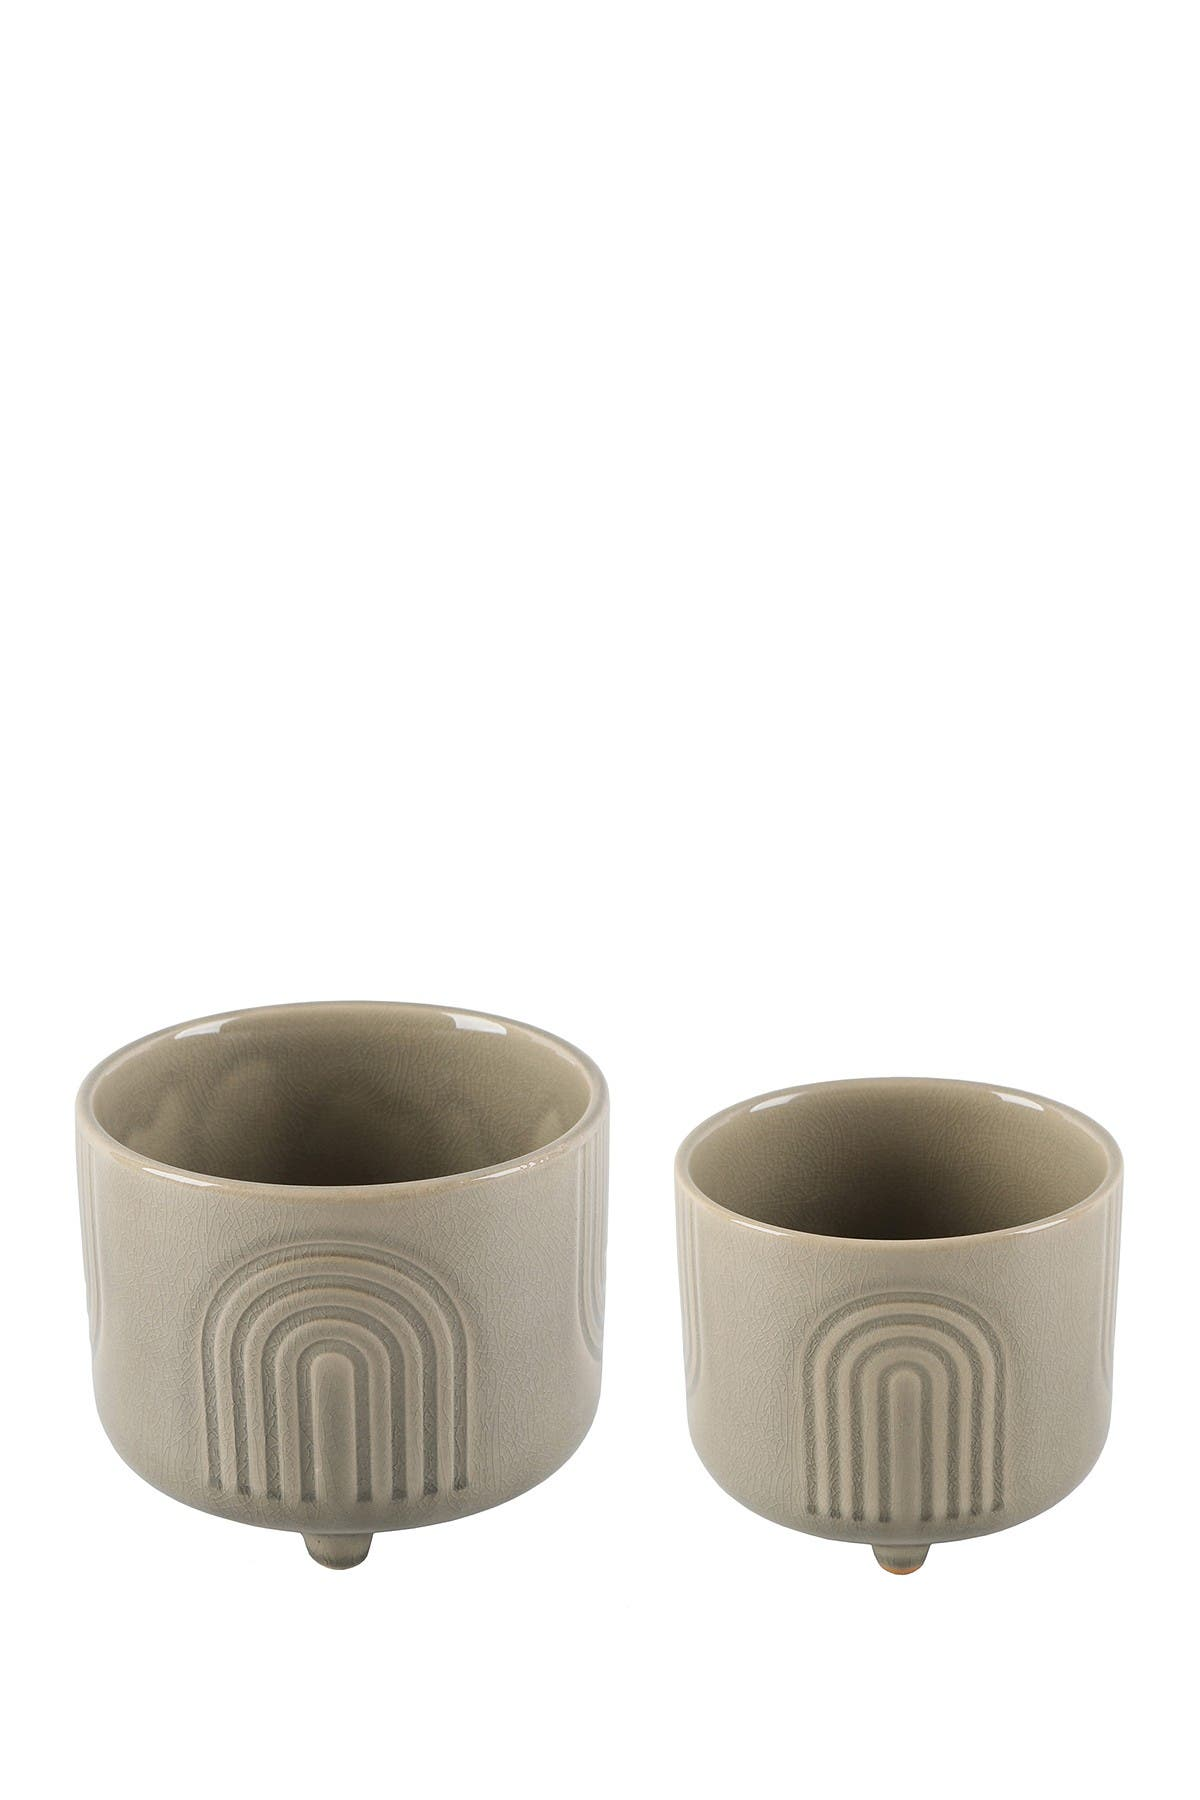 Image of FLORA BUNDA Rainbow Gray Ceramic Planters Set